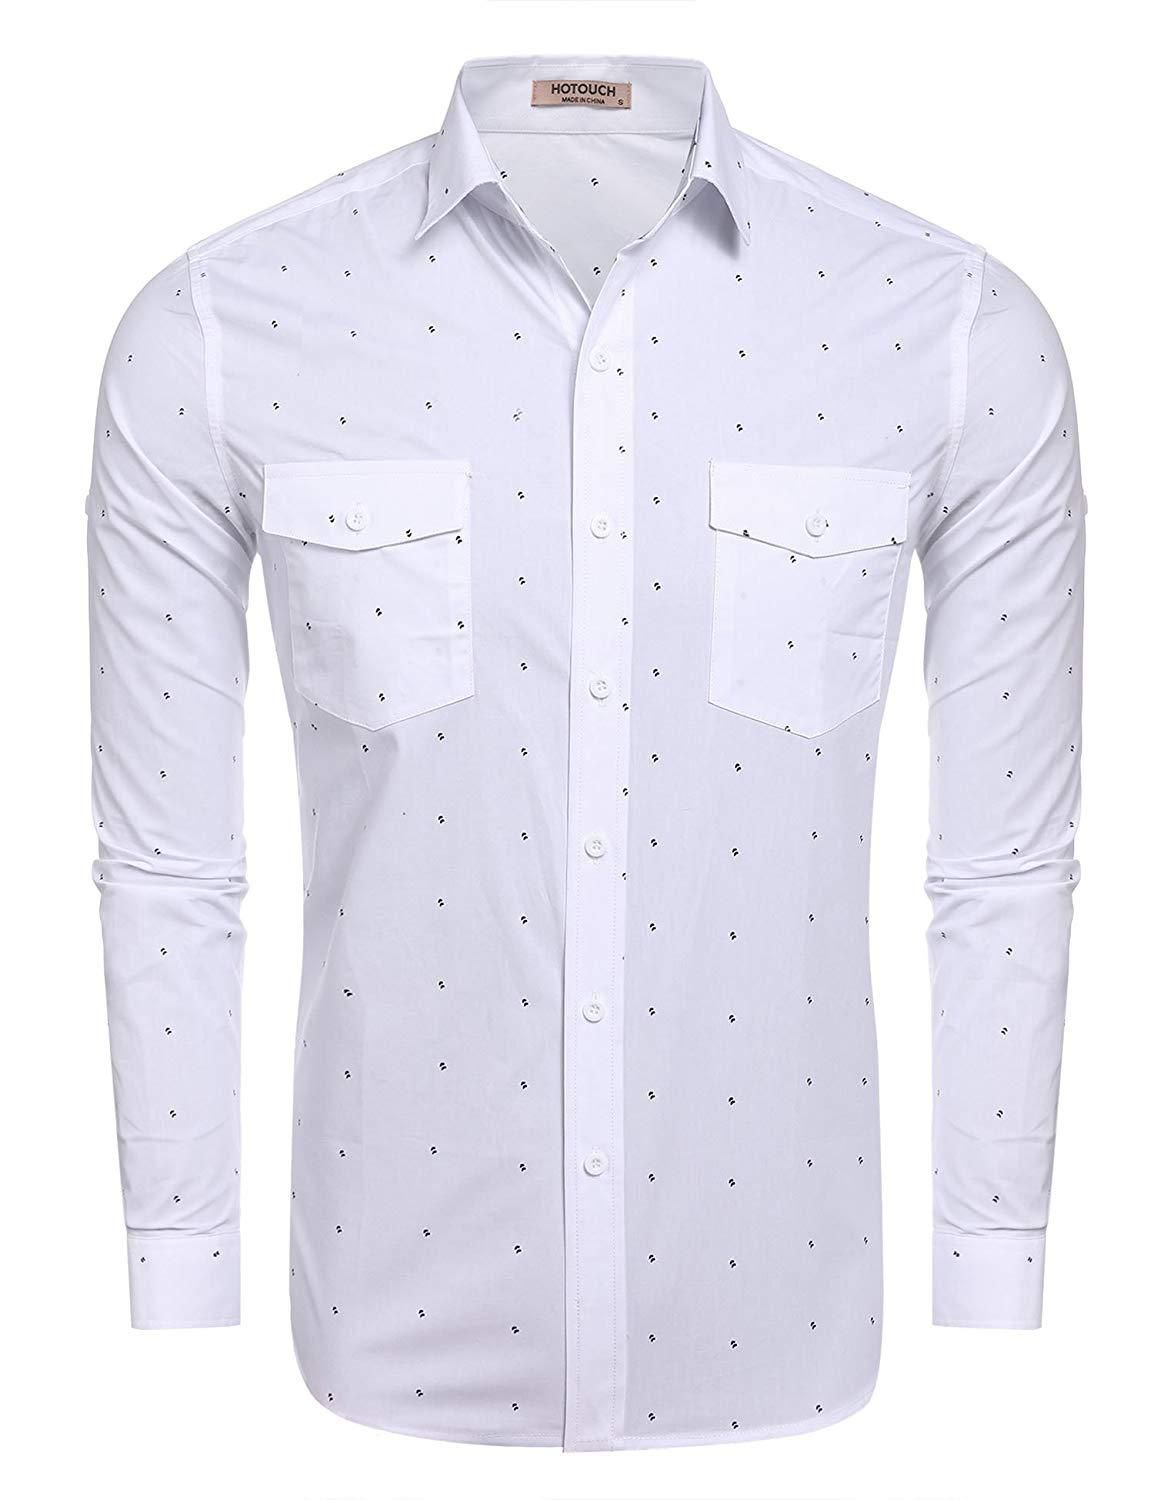 3e69013b1 Hotouch Men's Fashion Button Up Shirt Slim Fit Contrast Long Sleeve Casual  Button Down Shirts